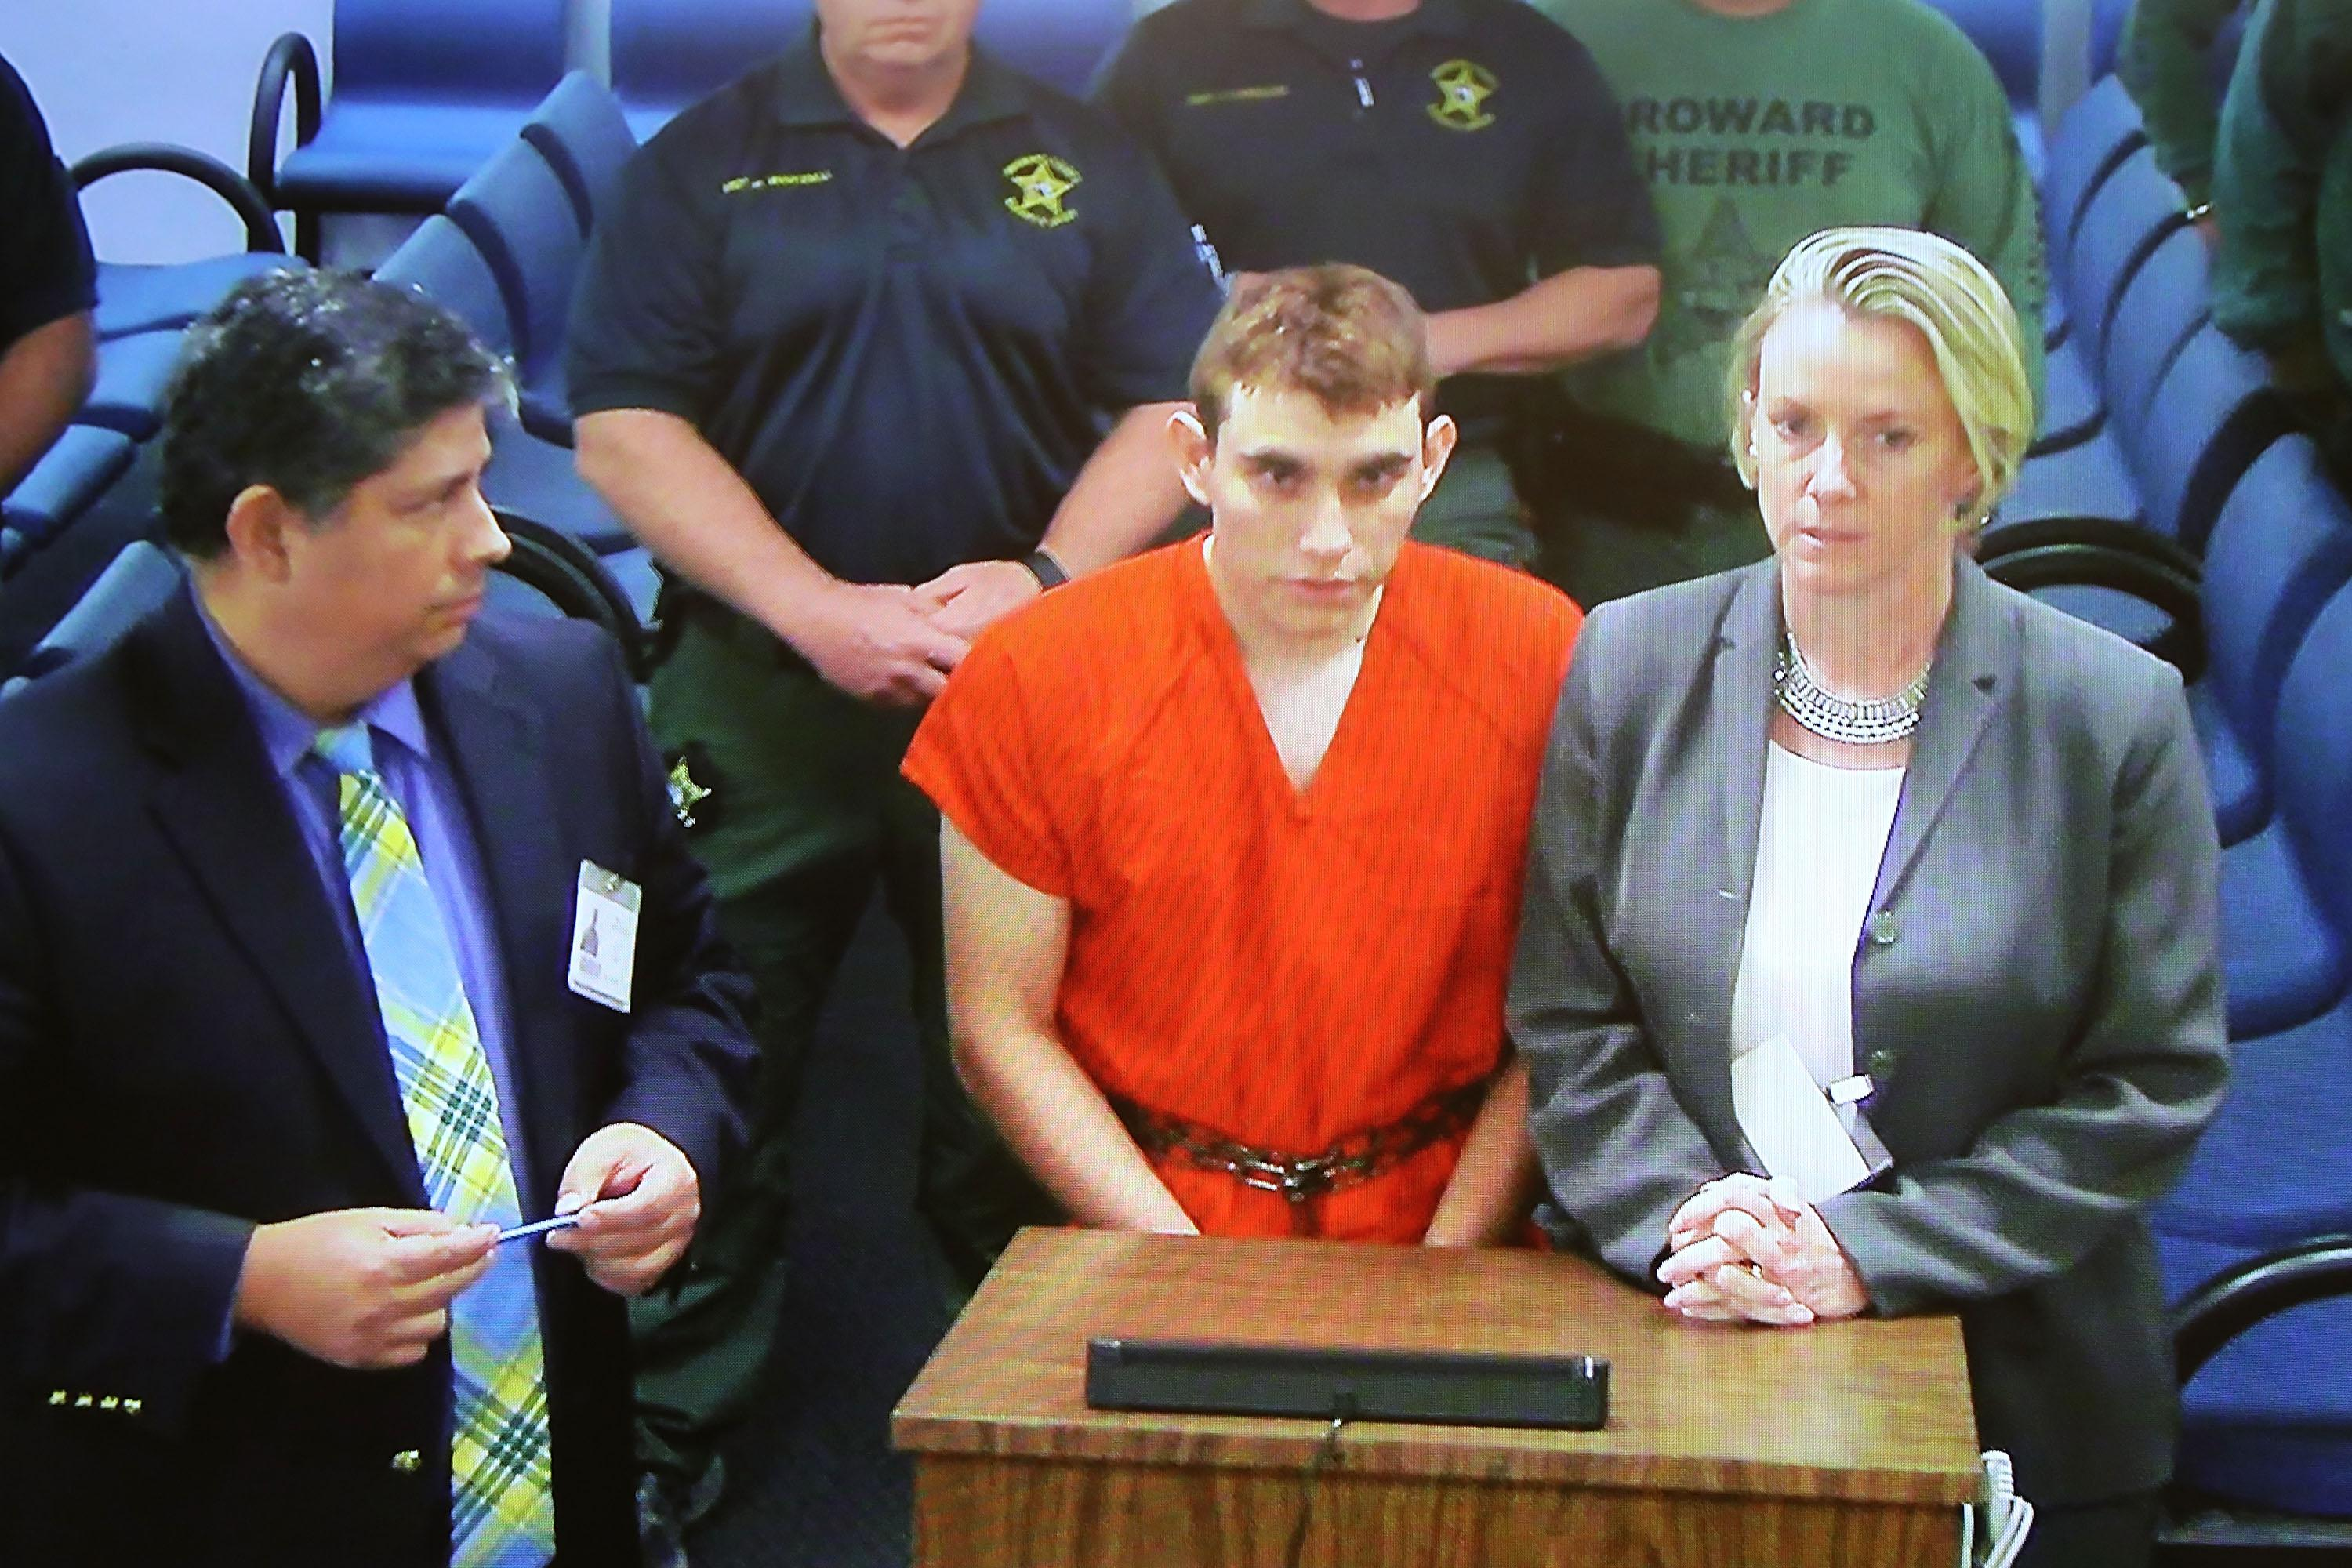 Nikolas Cruz, who has been charged with murdering 17 people, was reportedly a member of the Republic of Florida.